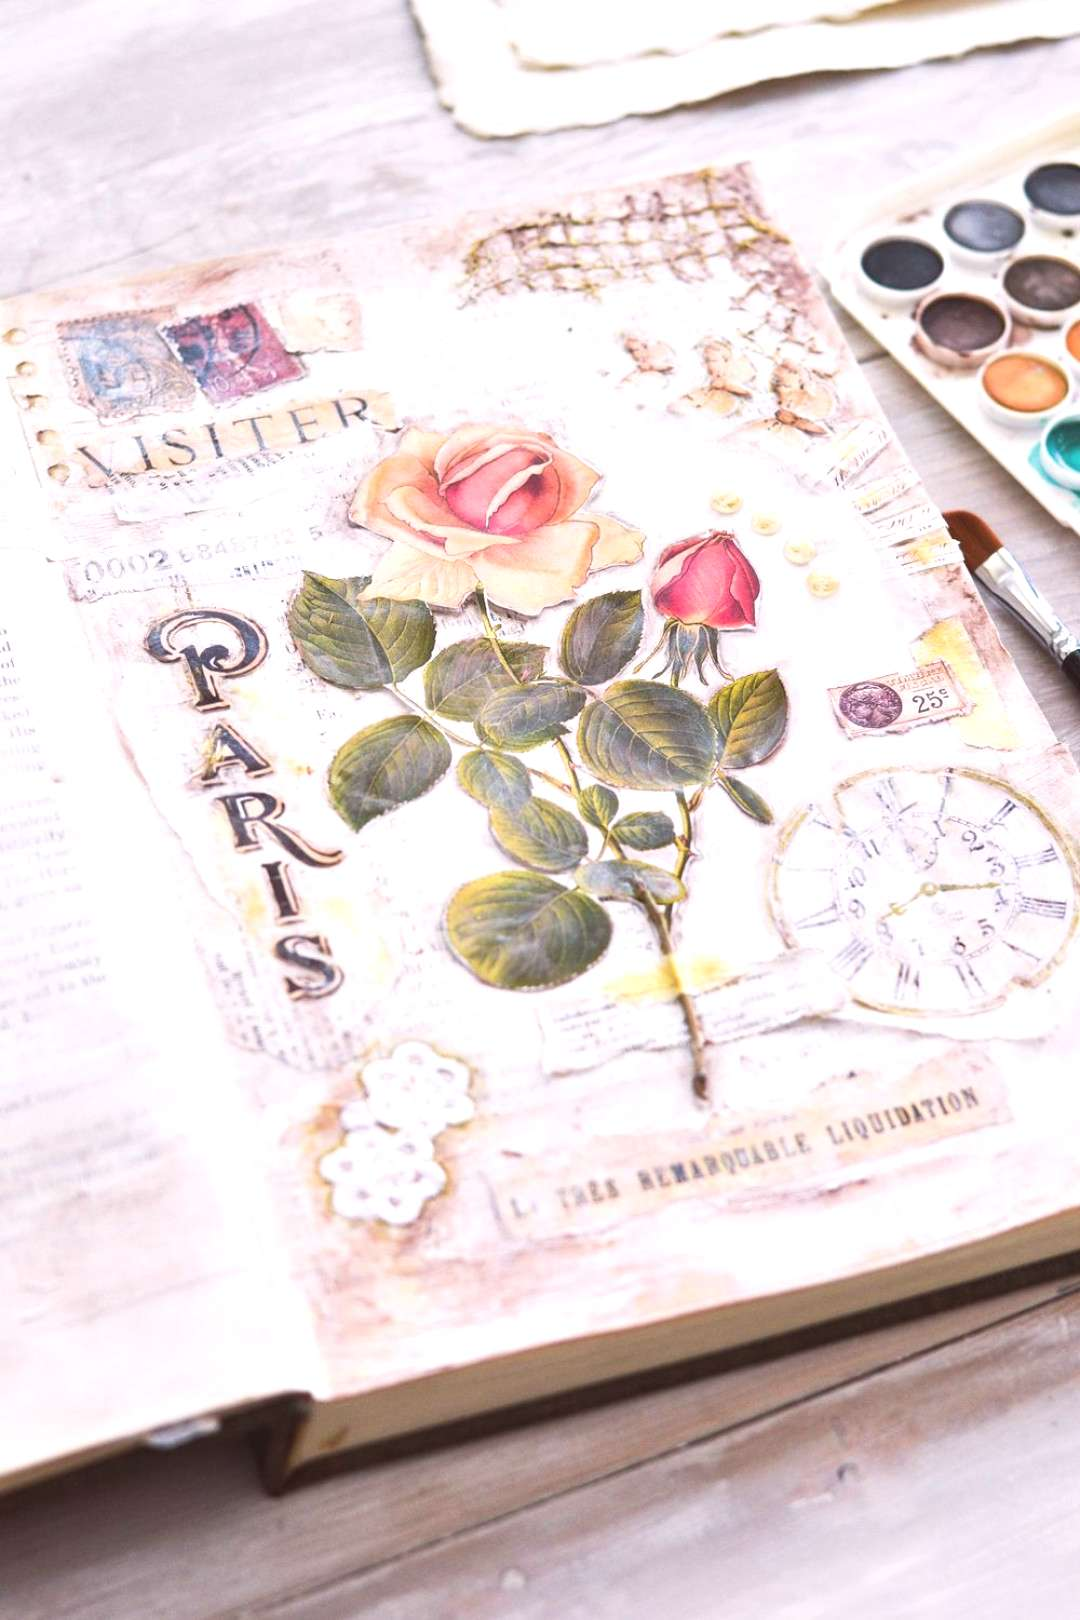 Ever wanted to start a DIY French Altered Book Art Journal? Learn the basics on how to prepare the